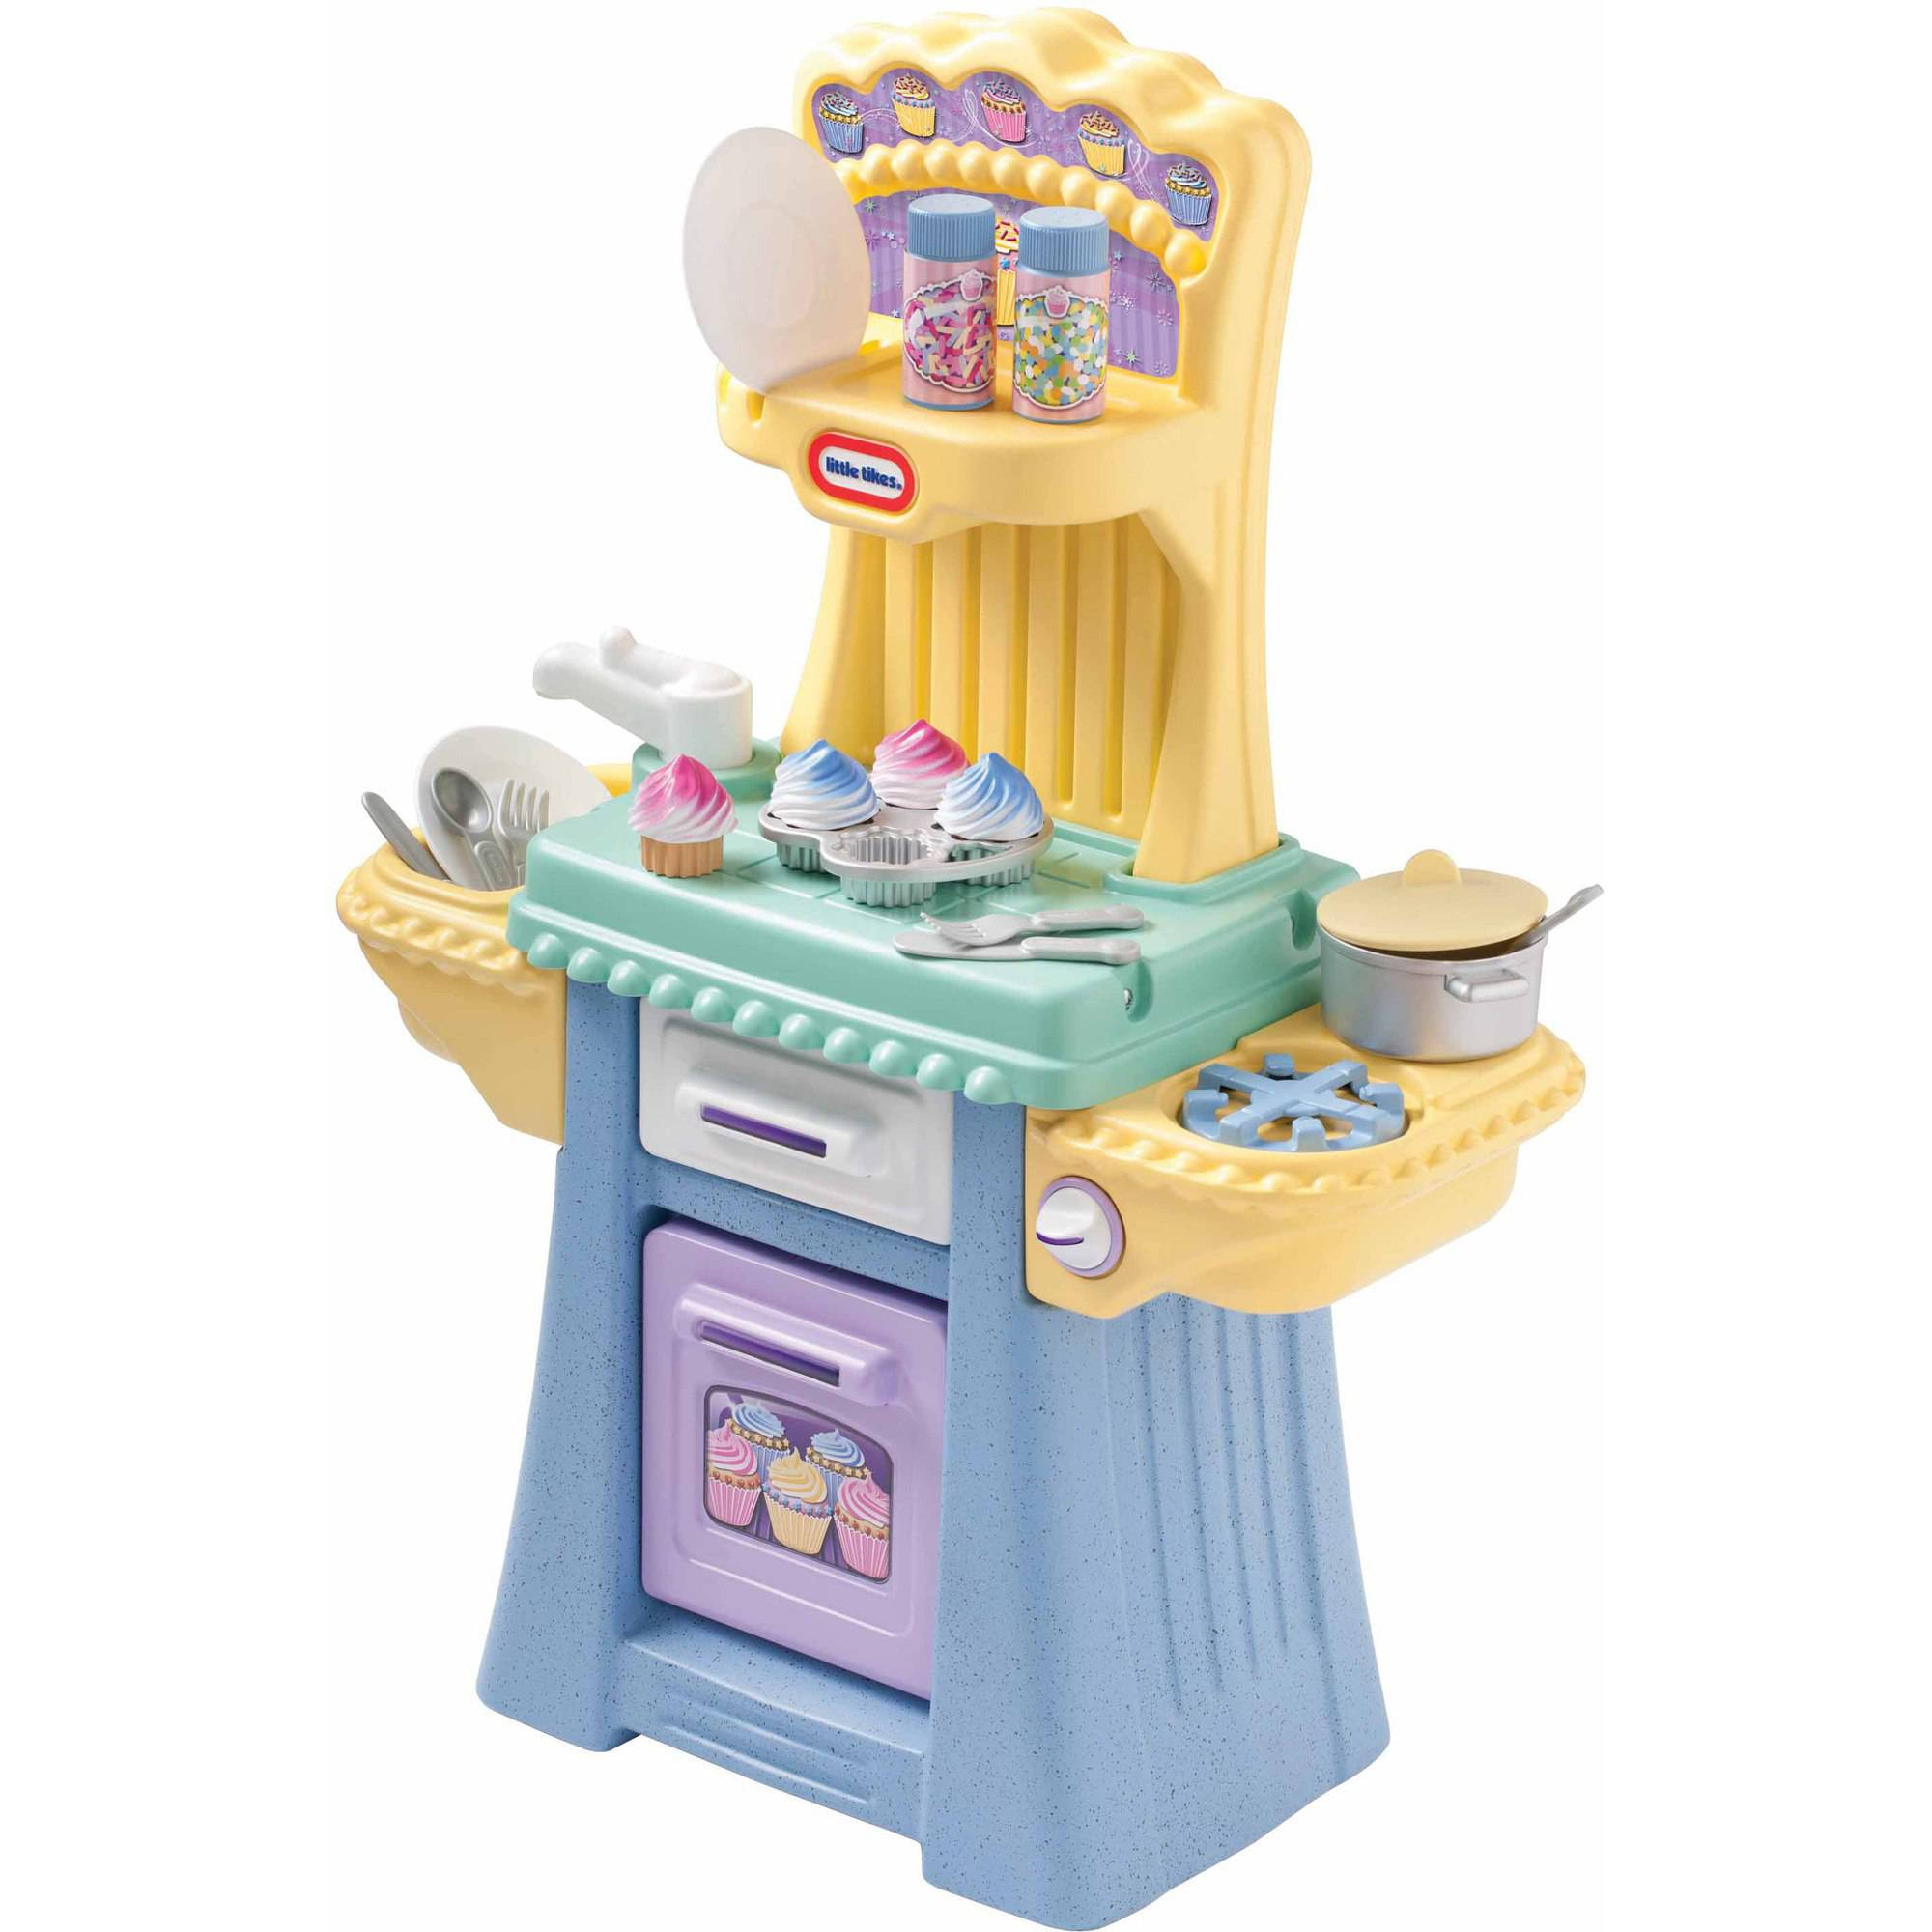 Little Tikes Cupcake Kitchen - Walmart.com